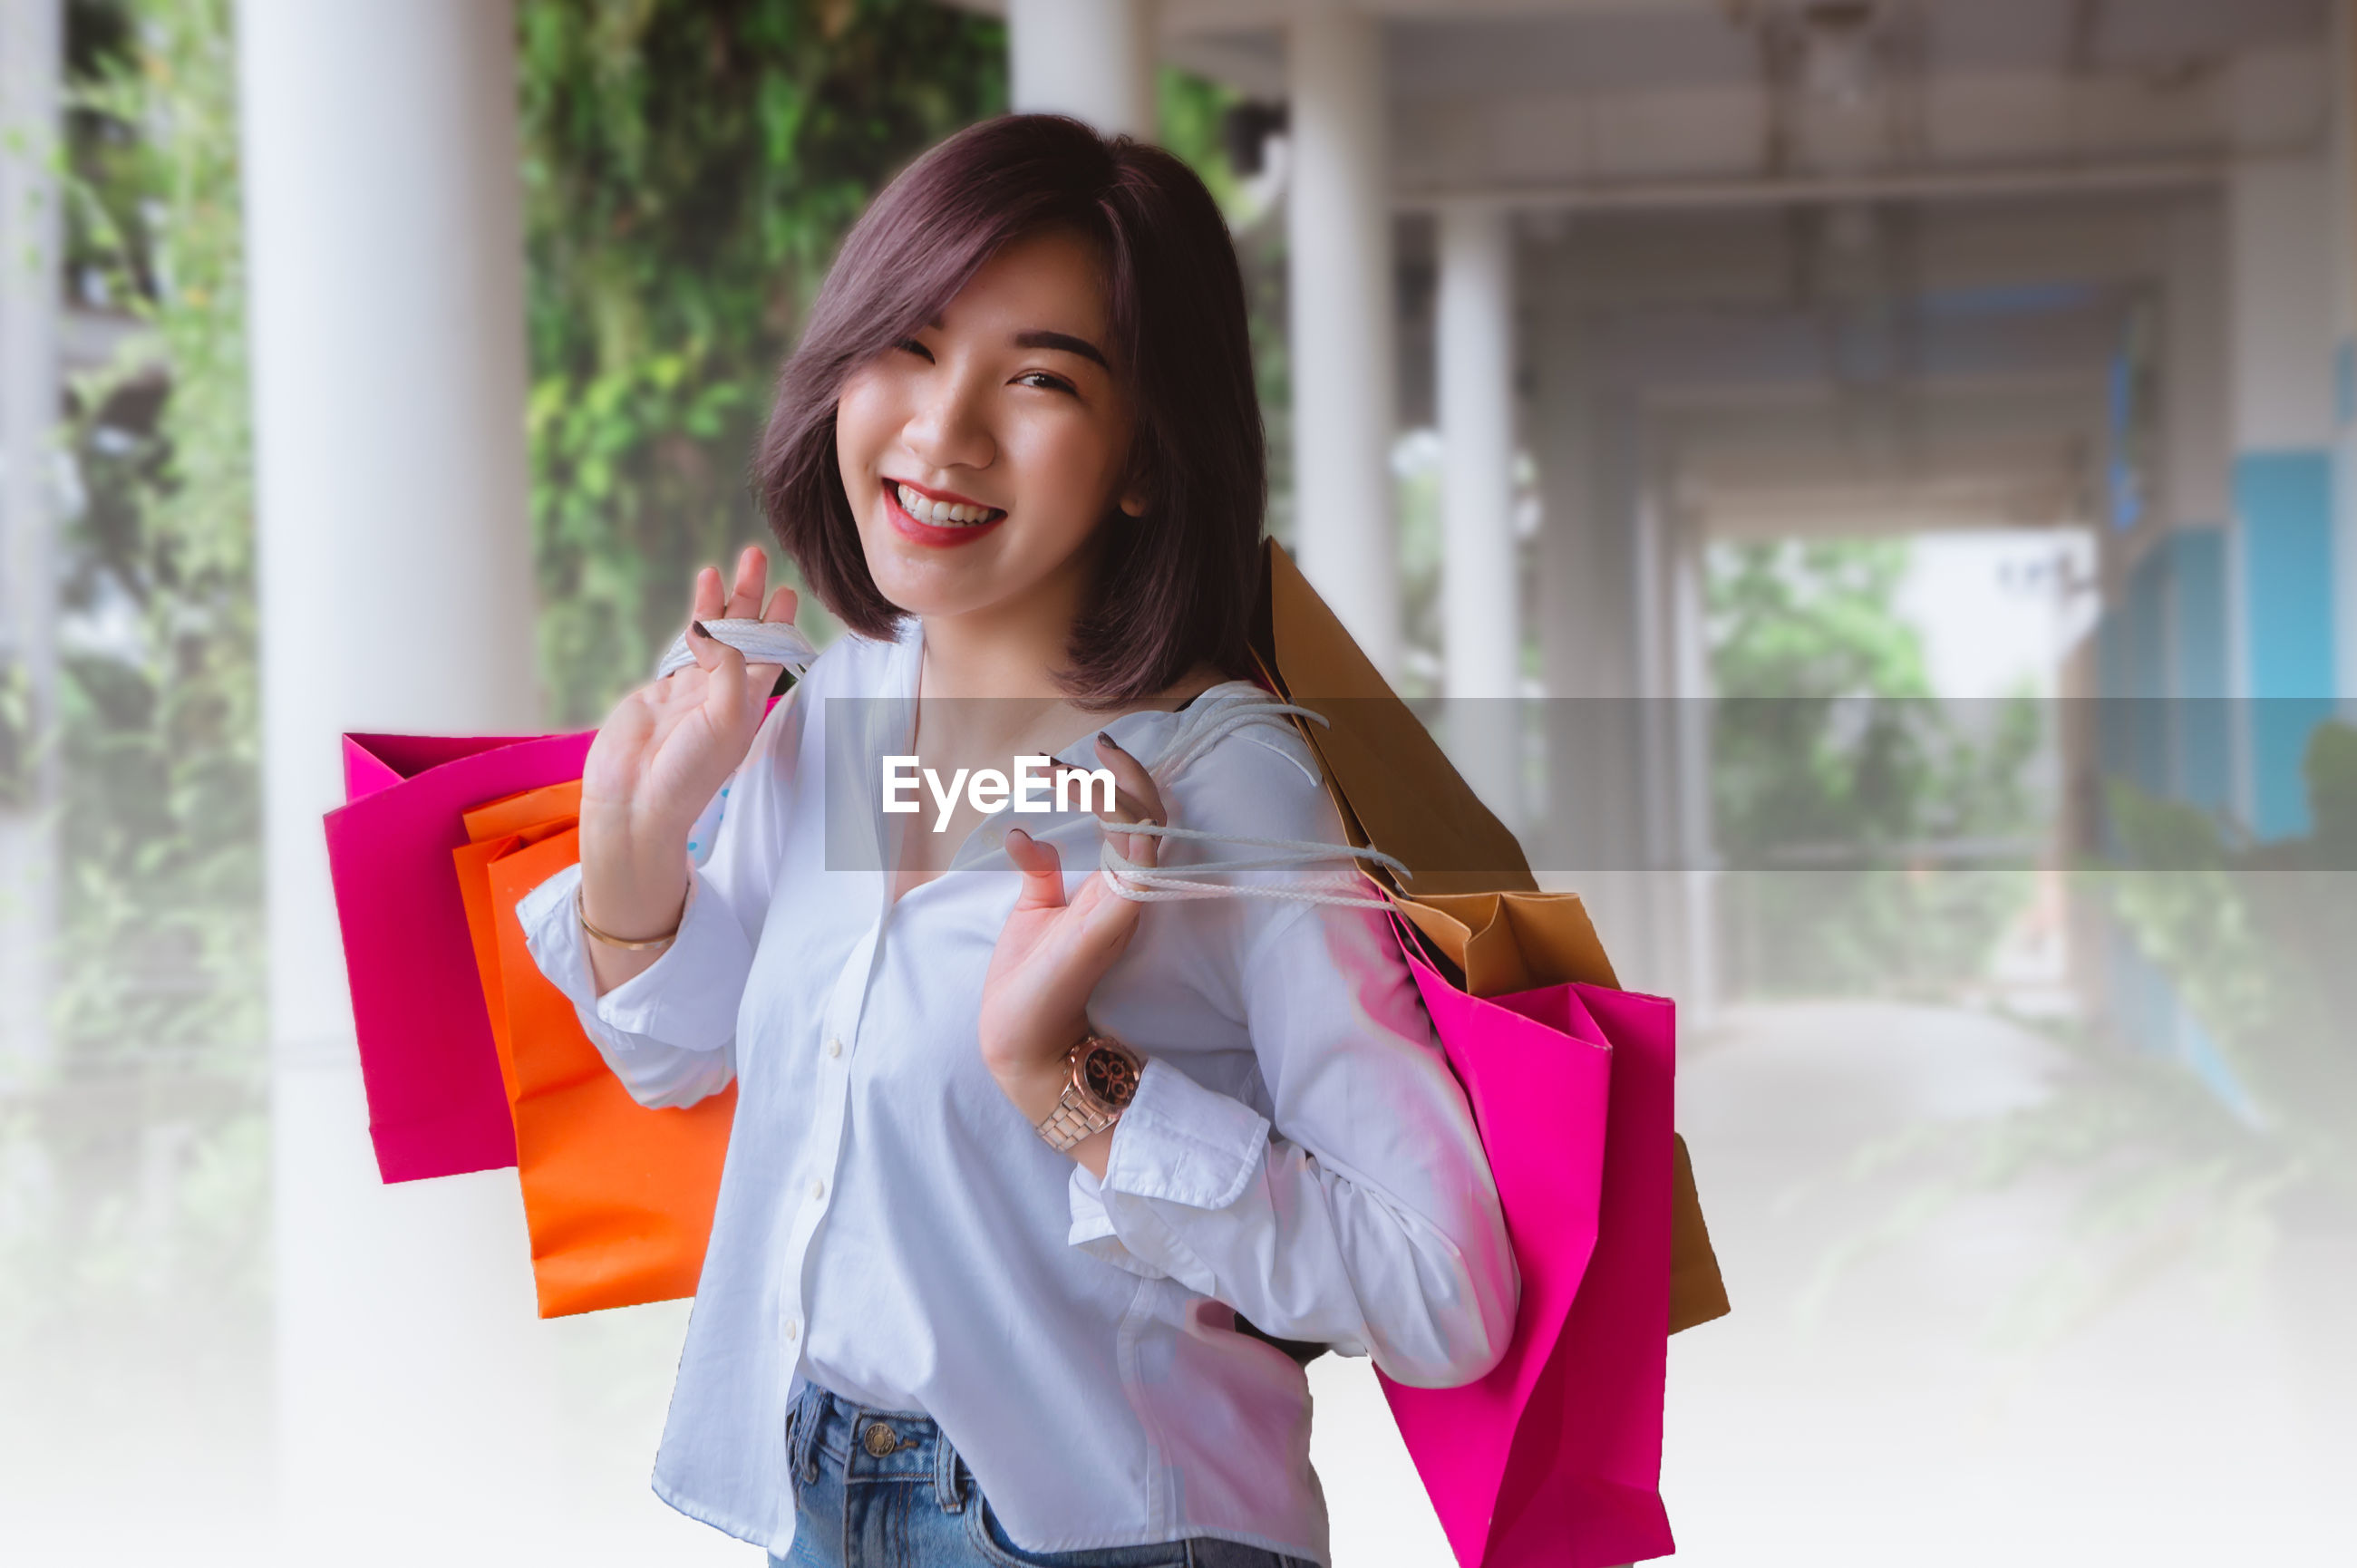 Portrait of smiling young woman with shopping bags standing outdoors